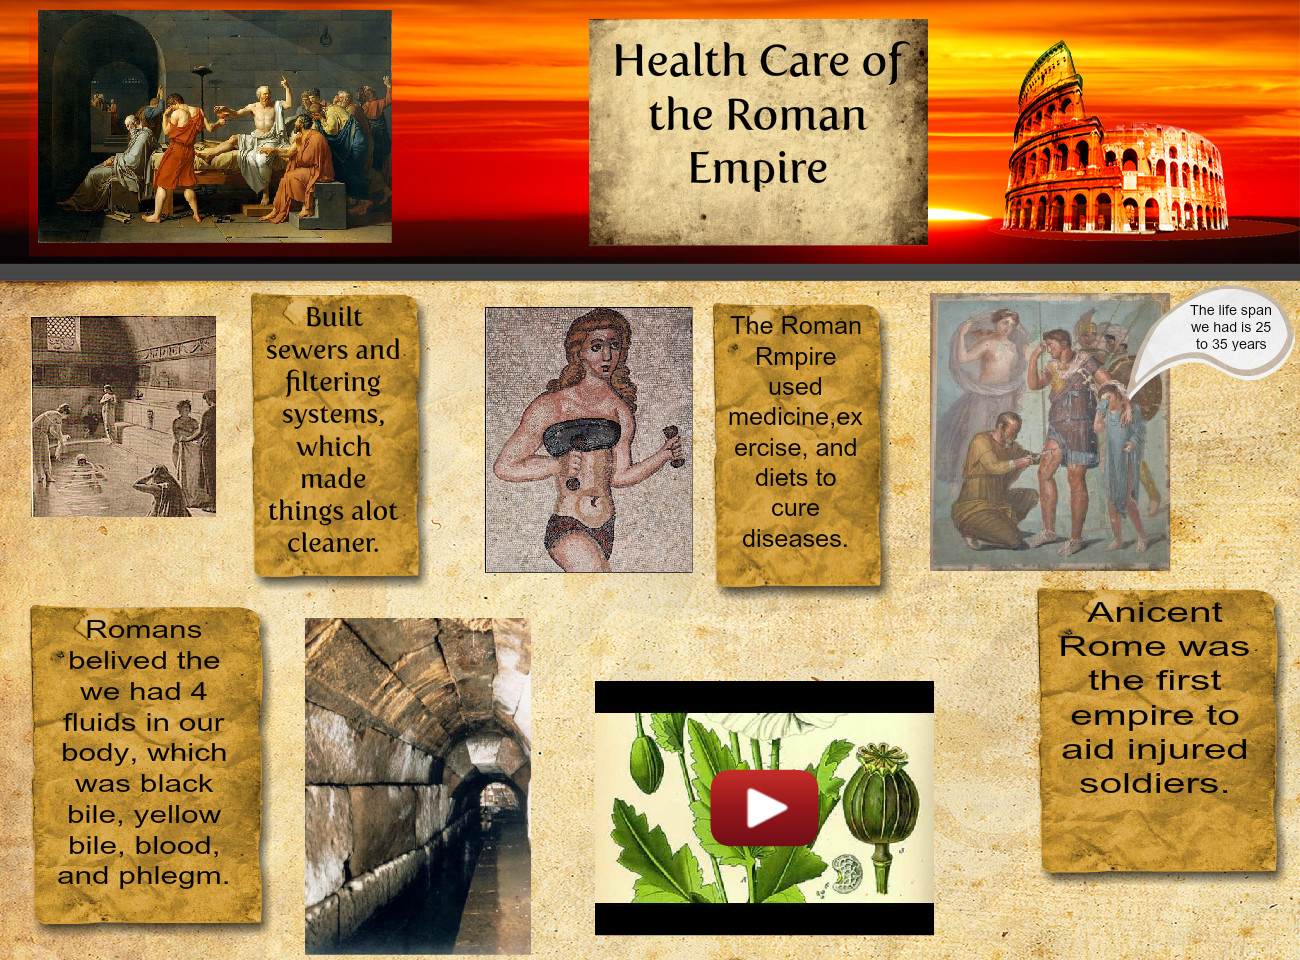 Health Care of the Roman Empire